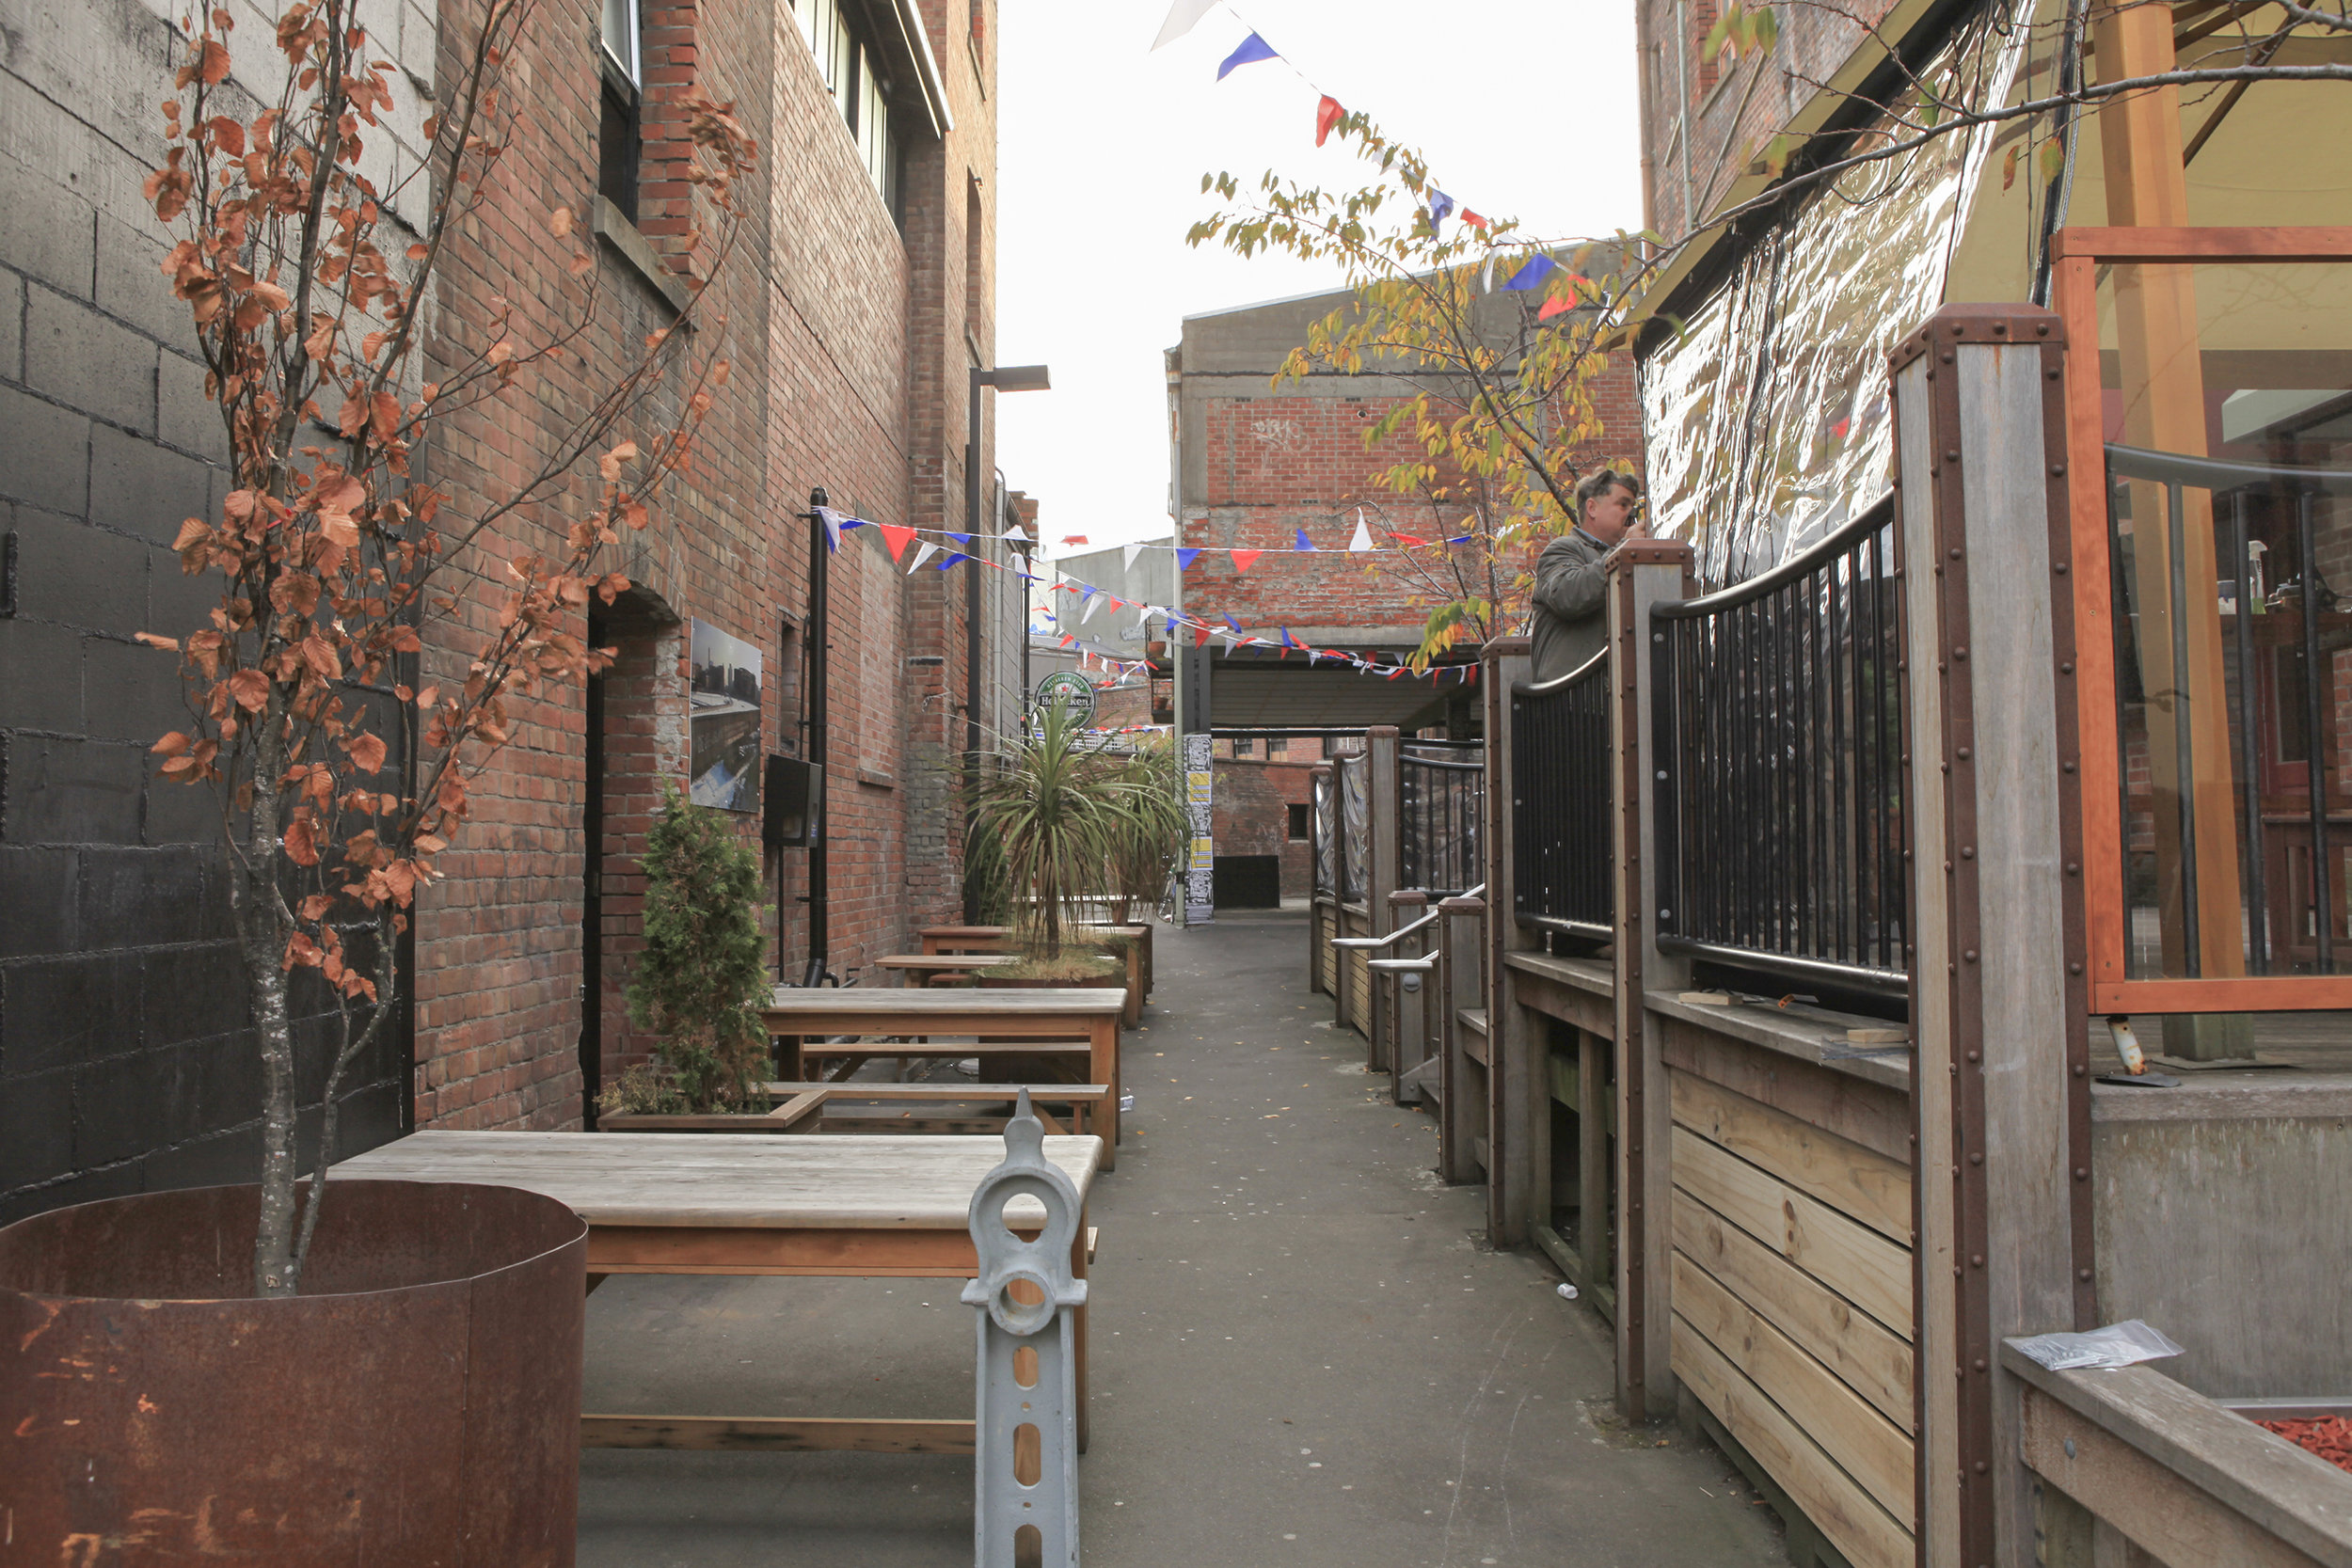 Fig 16: Commercialized laneway in Christchurch, New Zealand – in this case outdoor seating for a small pub